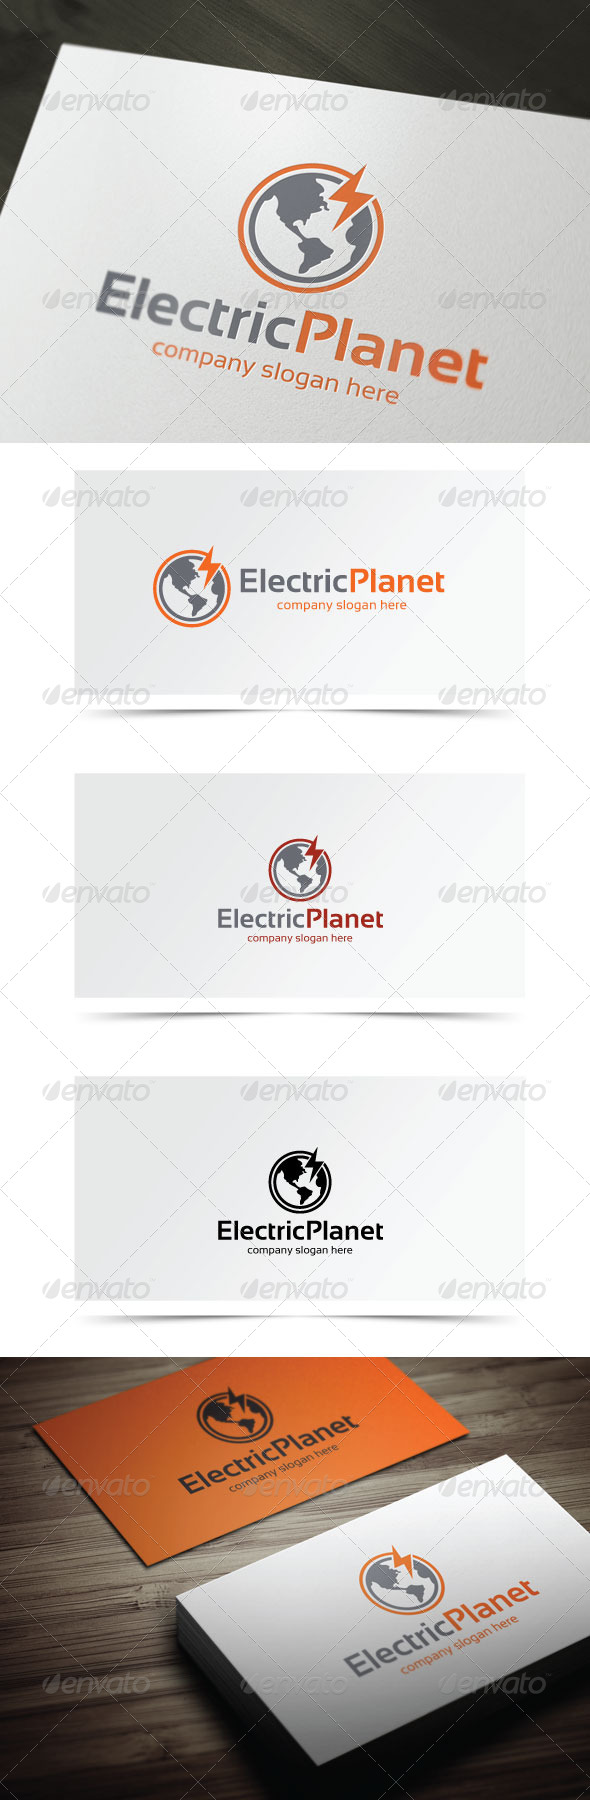 GraphicRiver Electric Planet 6726717